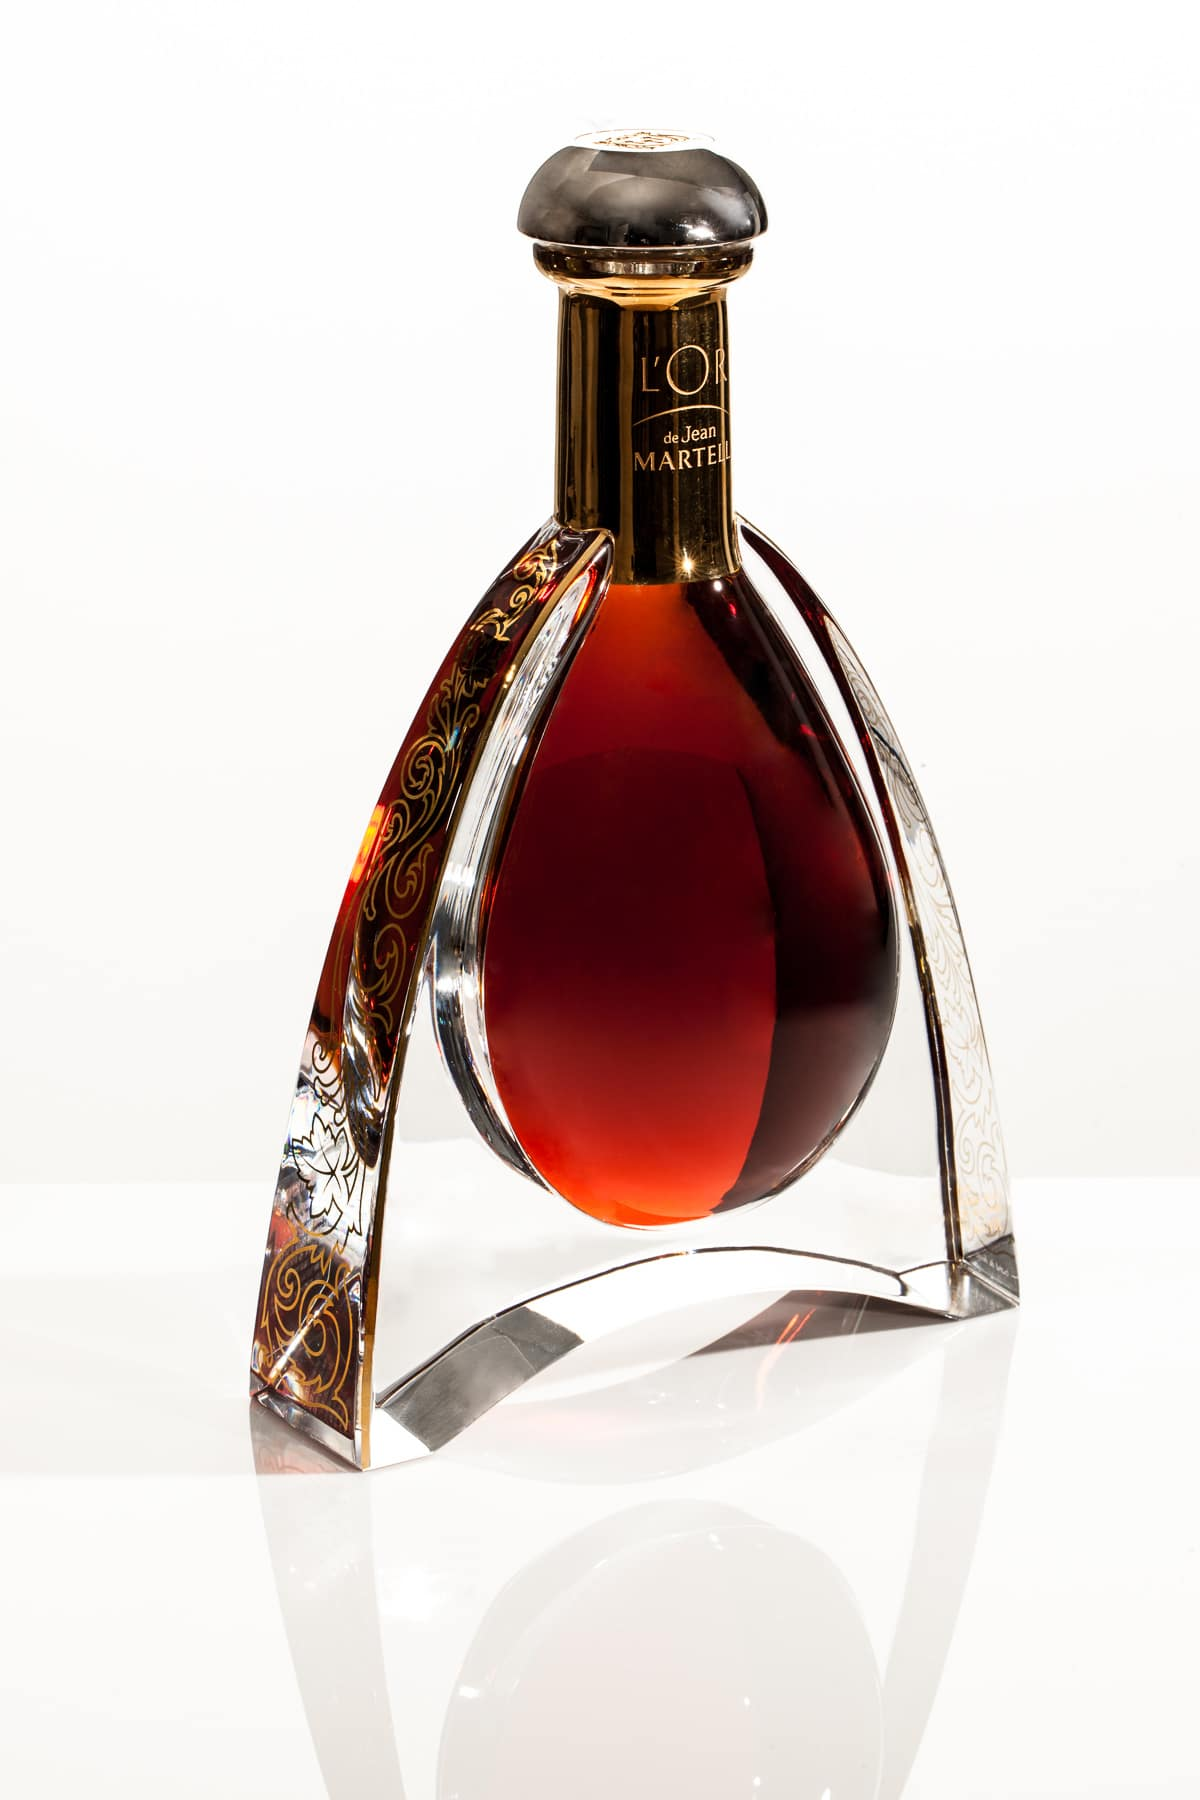 Bottle photography of L'or Martell Cognac on a white background is photographed at a low angle.